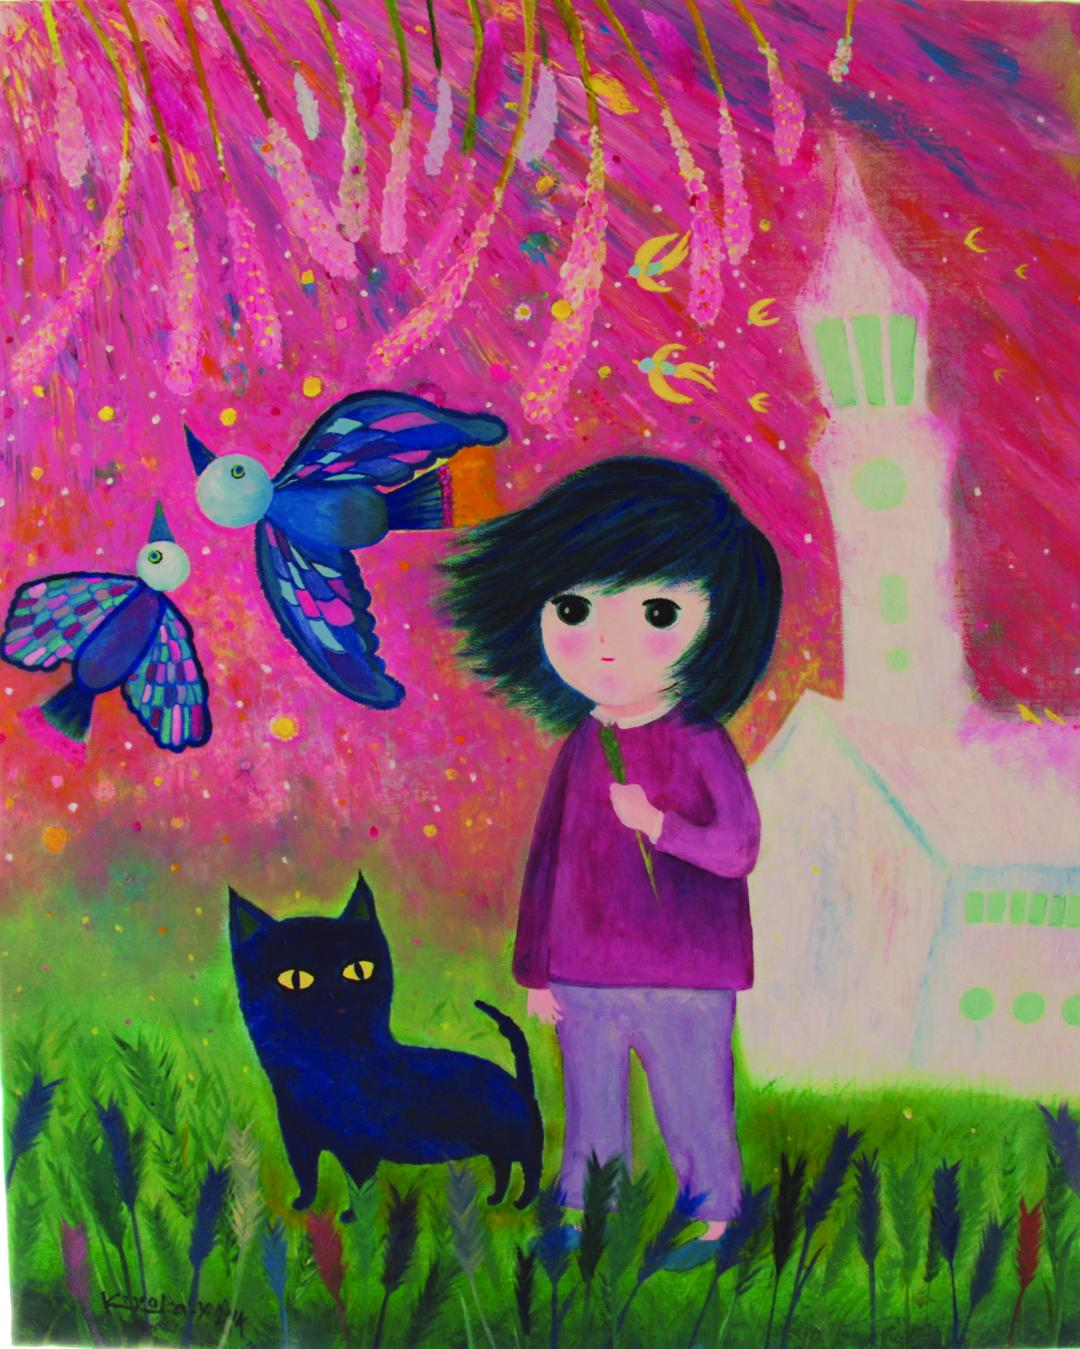 Abstract painting with a child-like figure and cat, birds. Grass on the foreground, a white house and pink sky in the background.